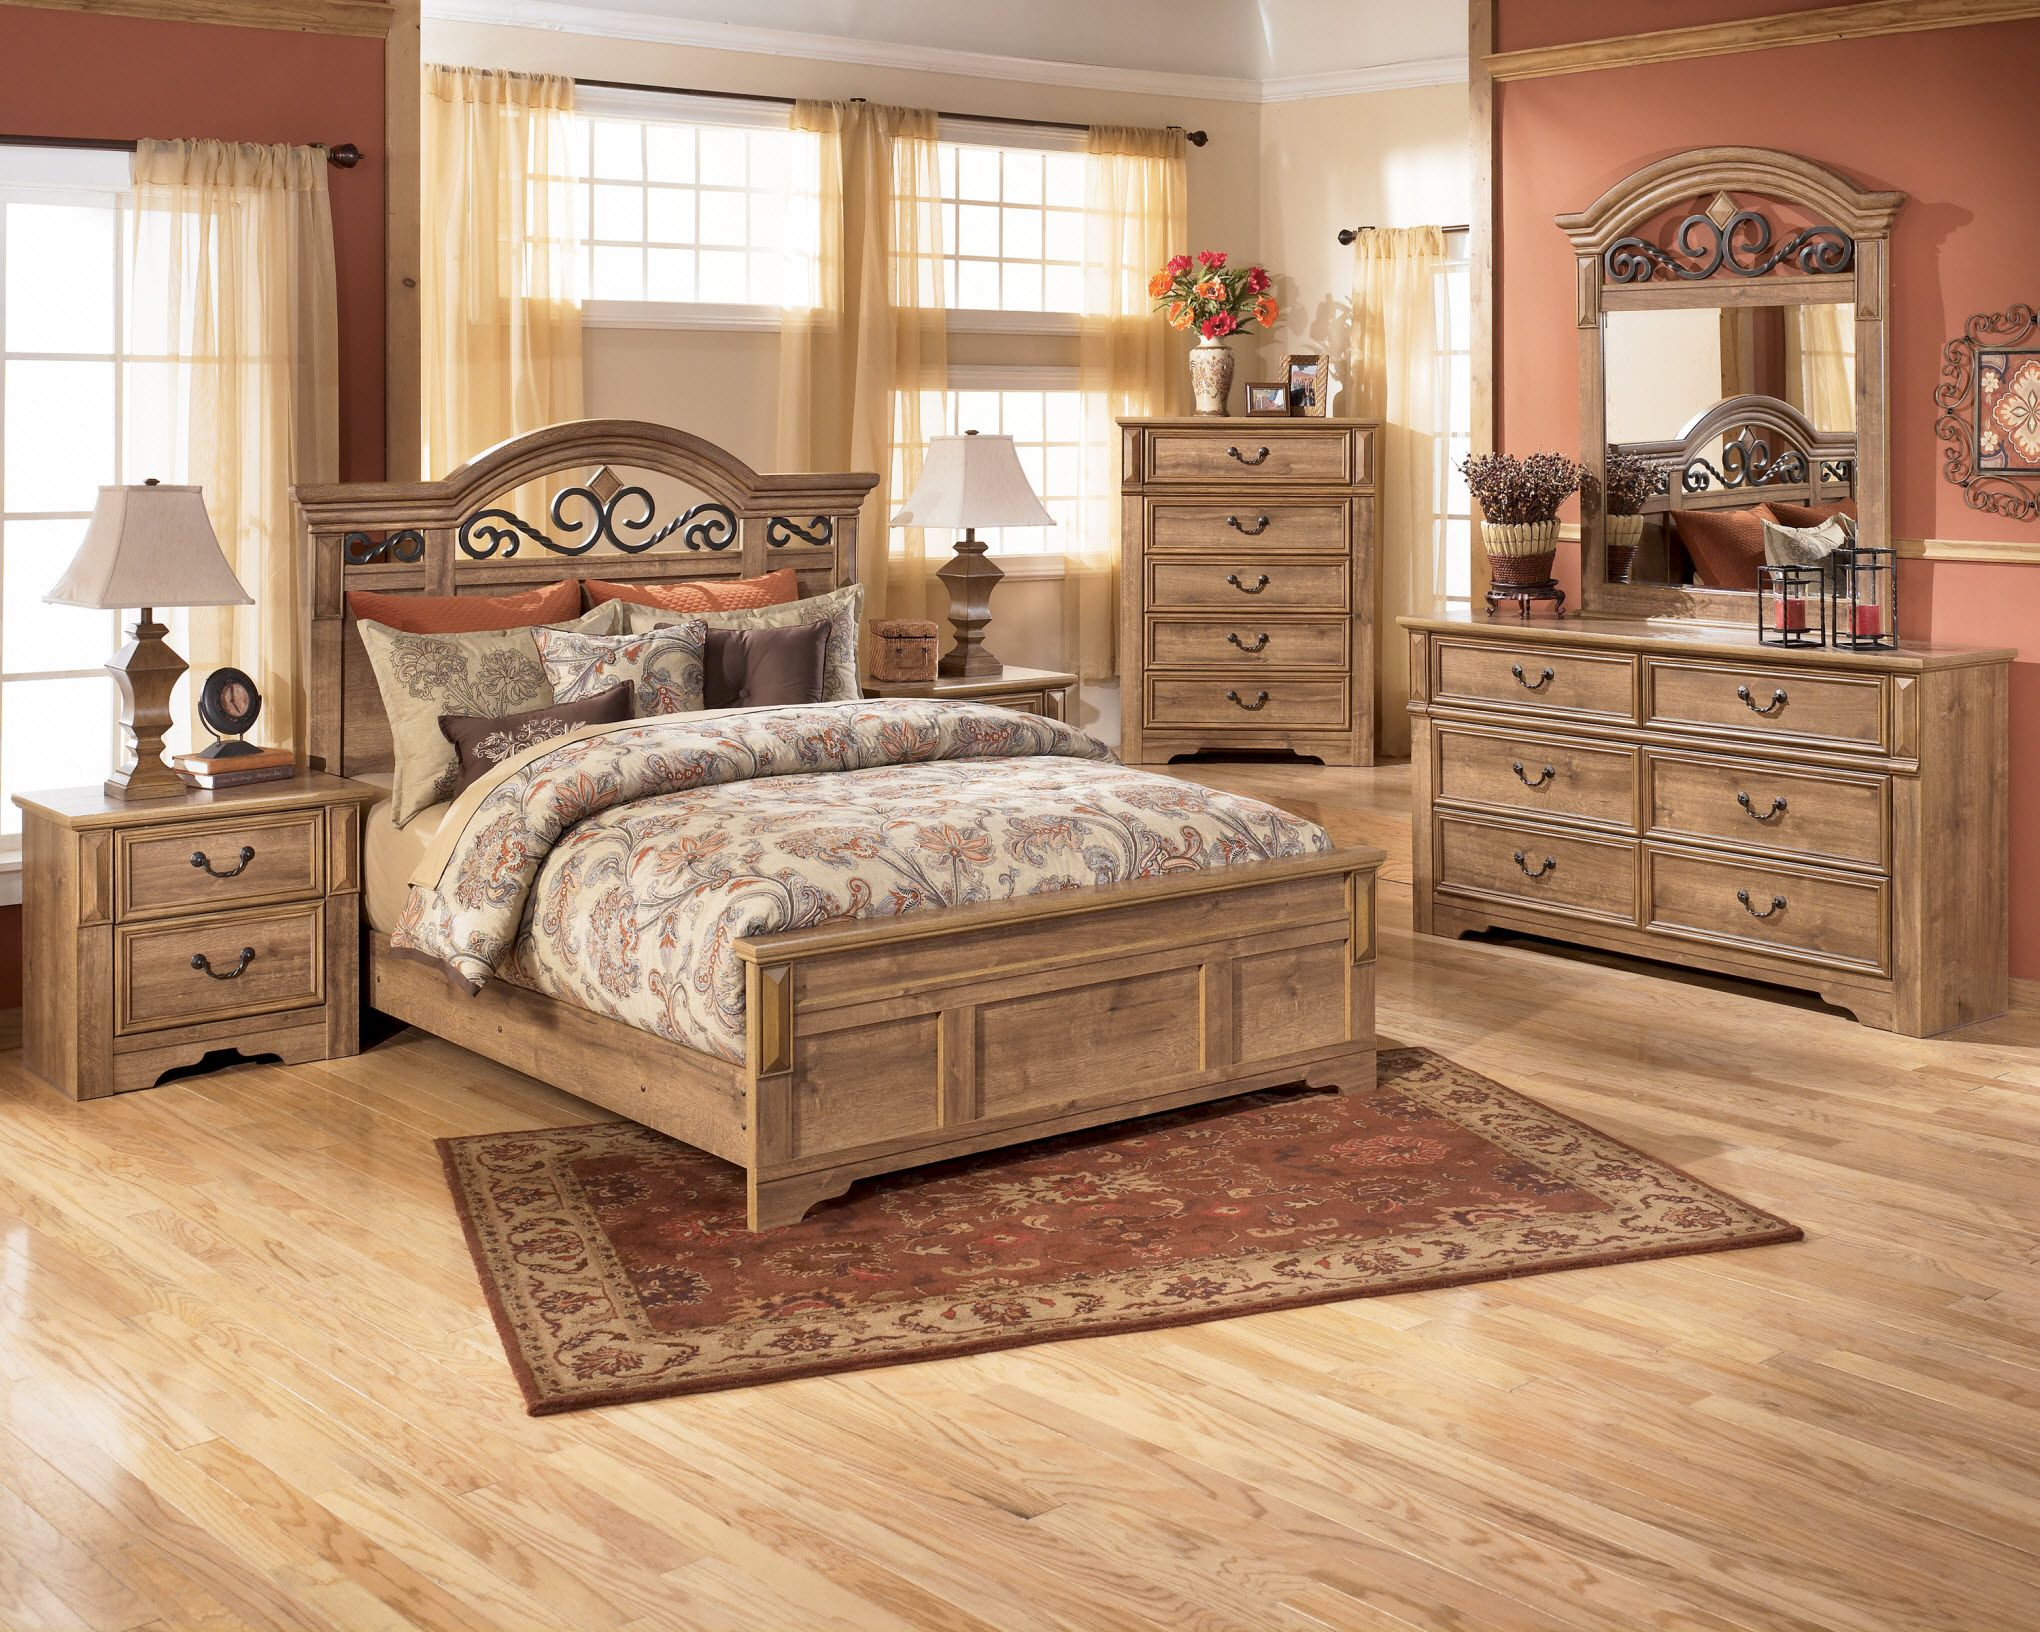 Ashley Bedroom Furniture Collections | AS_B170 B170 Whimbrel Forge ...